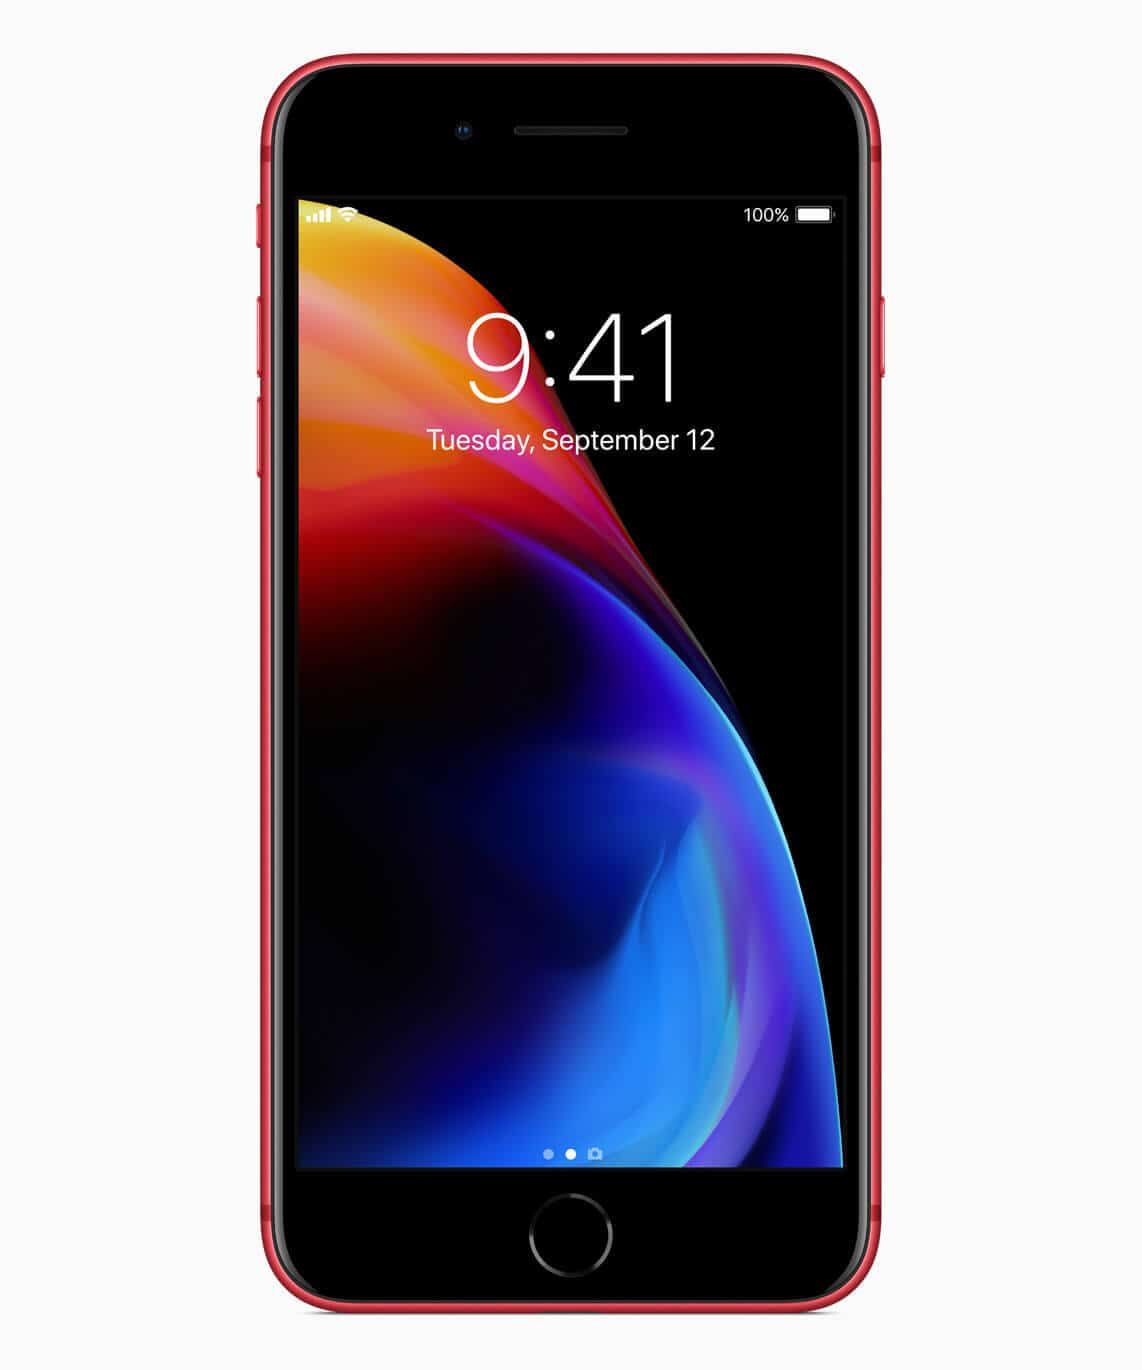 iPhone8PLUS-PRODUCT-RED_front_041018-1 Apple Introduces iPhone 8 and iPhone 8 Plus (PRODUCT)RED Special Edition